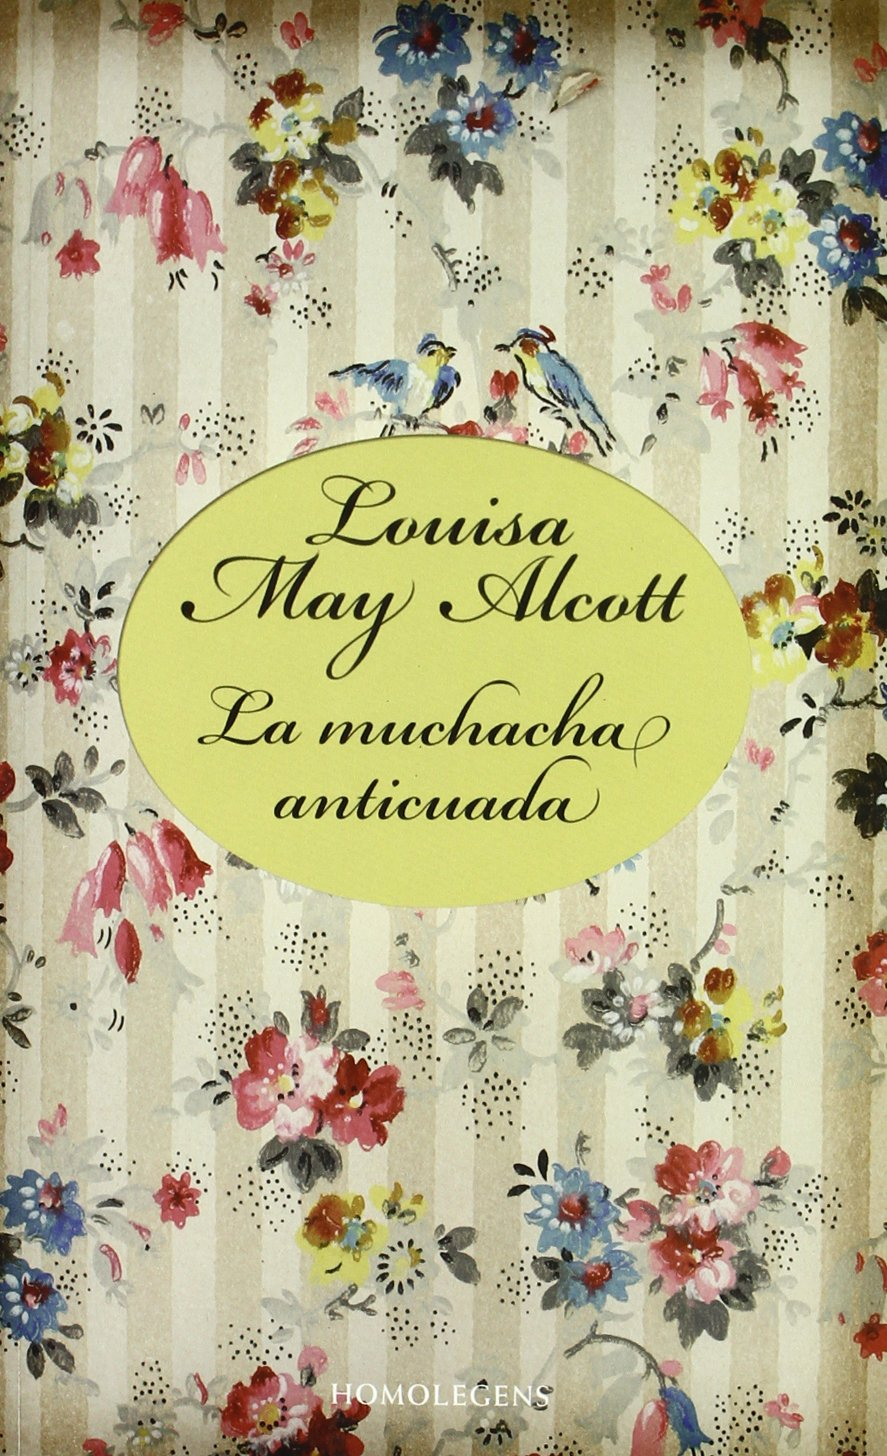 Muchacha Anticuada, La (Narrativa (homo Legens)): Amazon.es: May ...